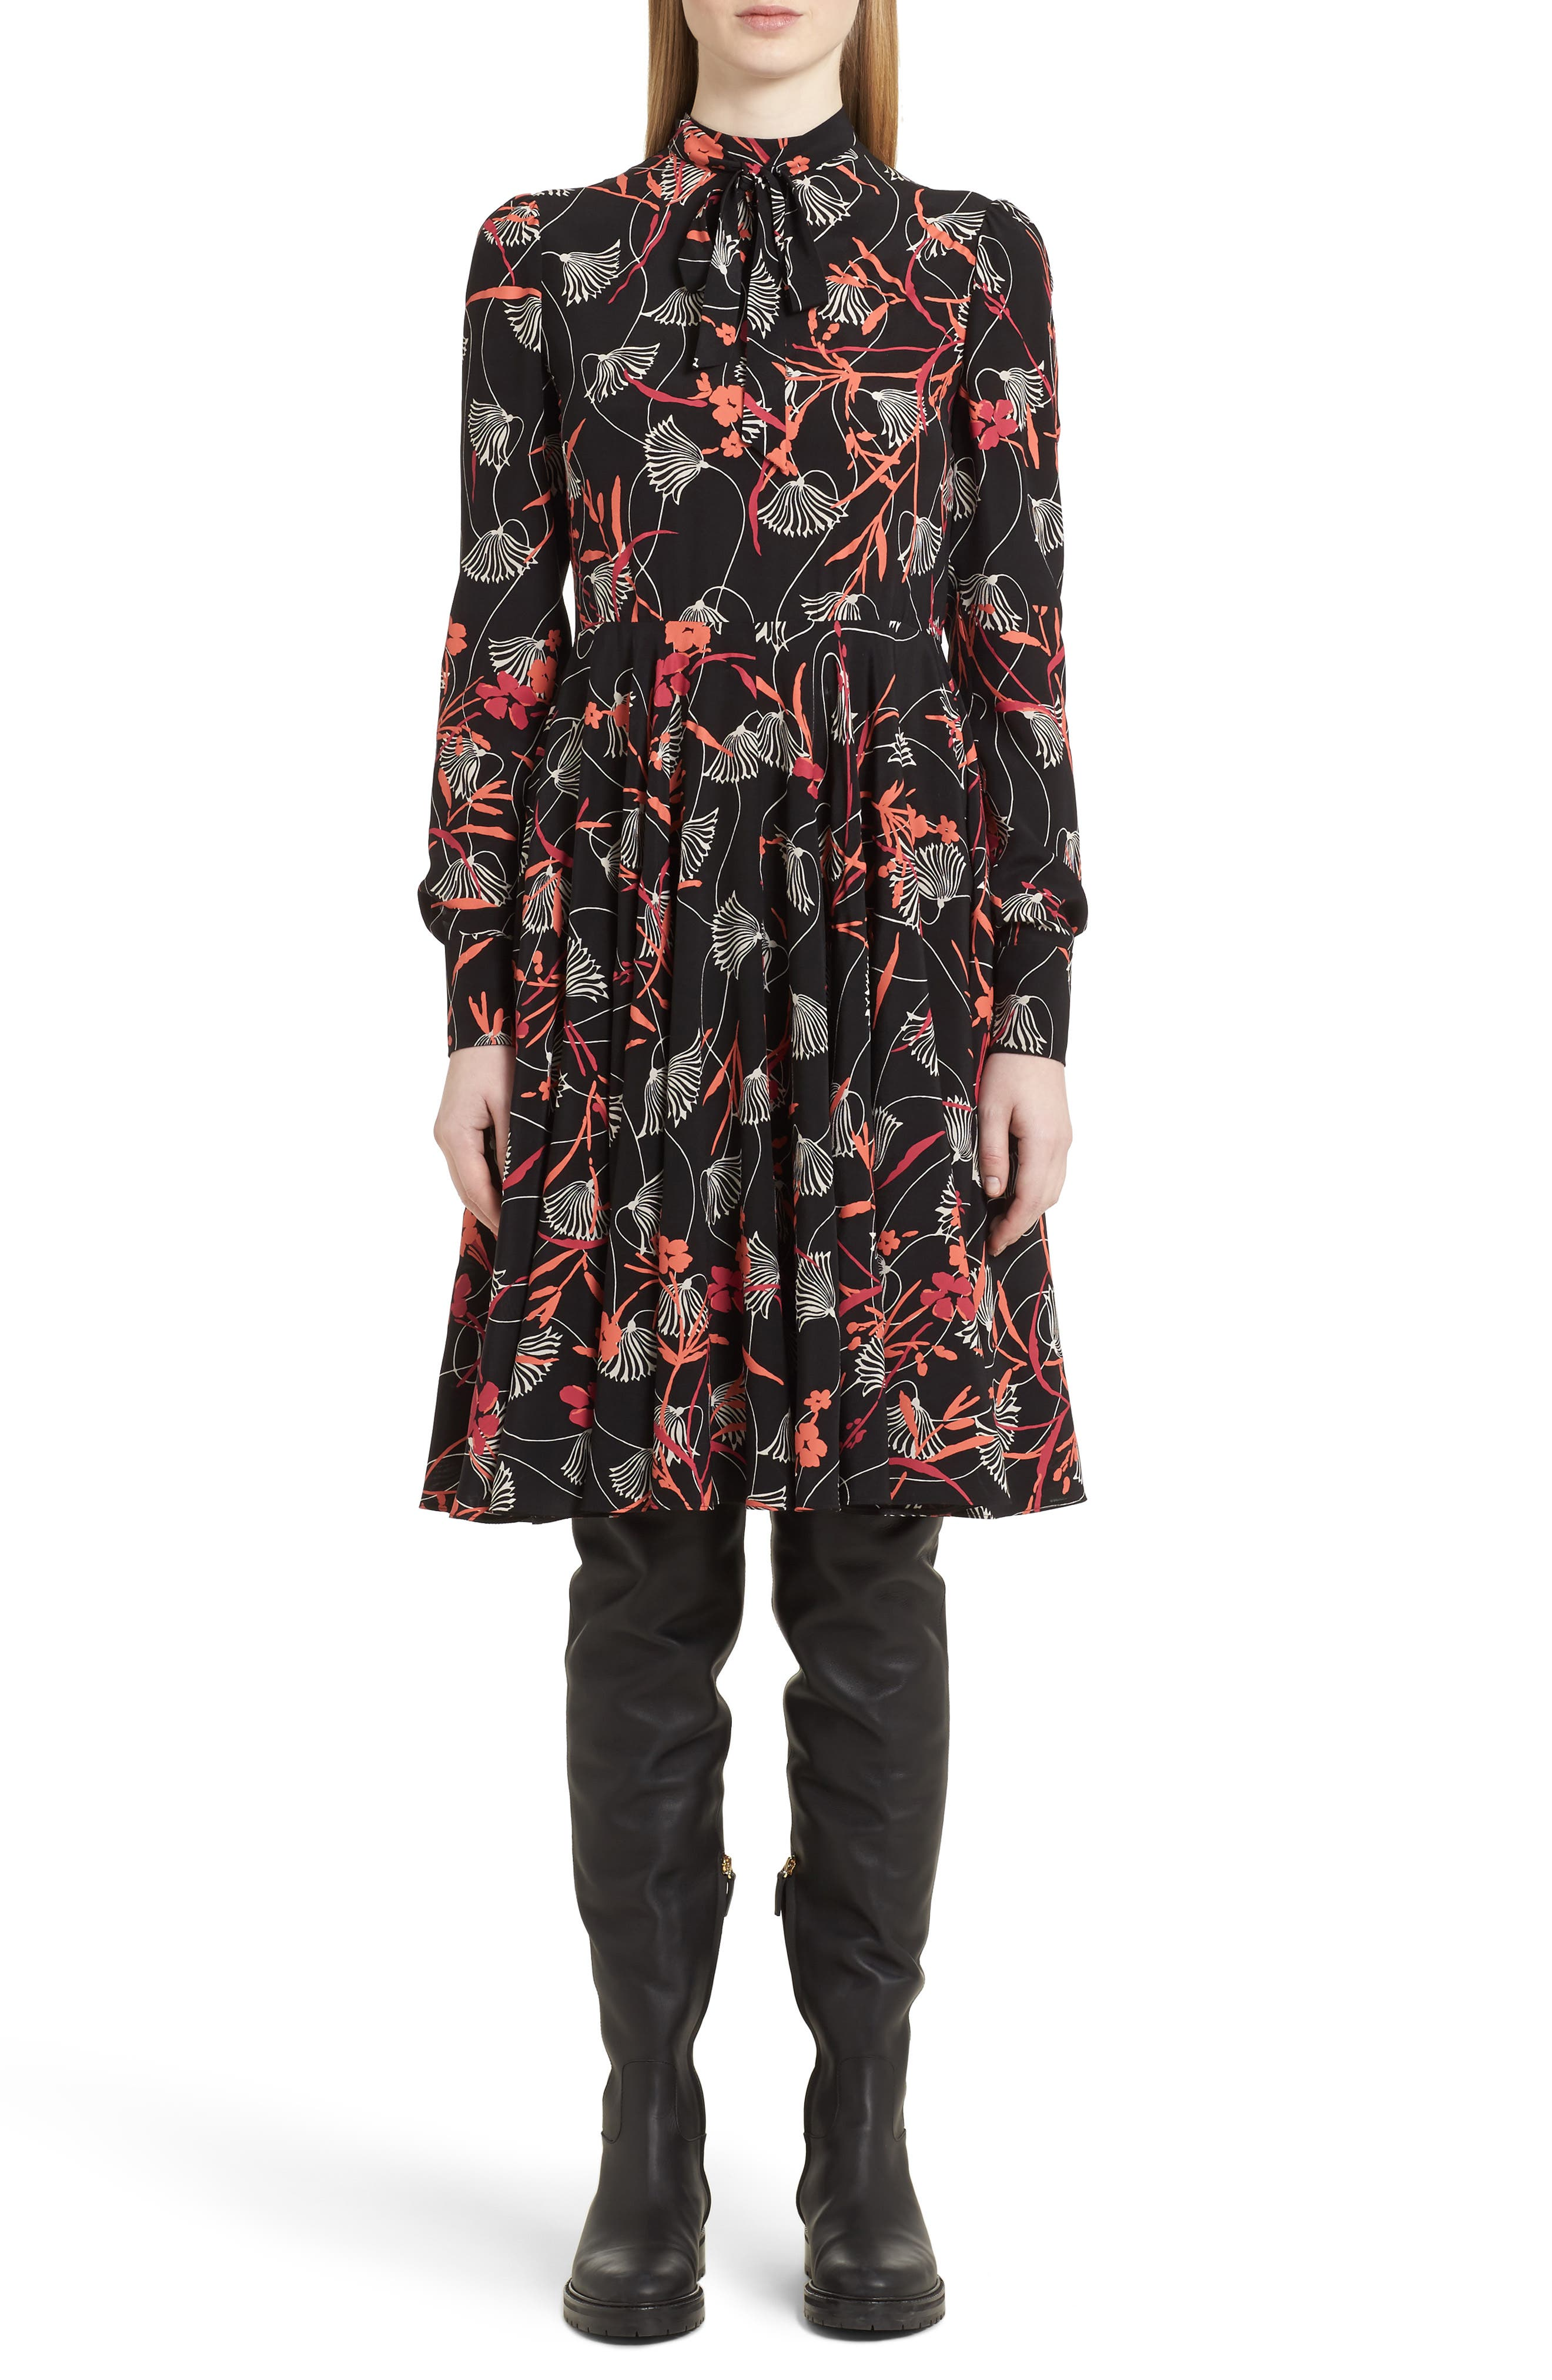 Valentino Lotus Print Tie Neck Dress